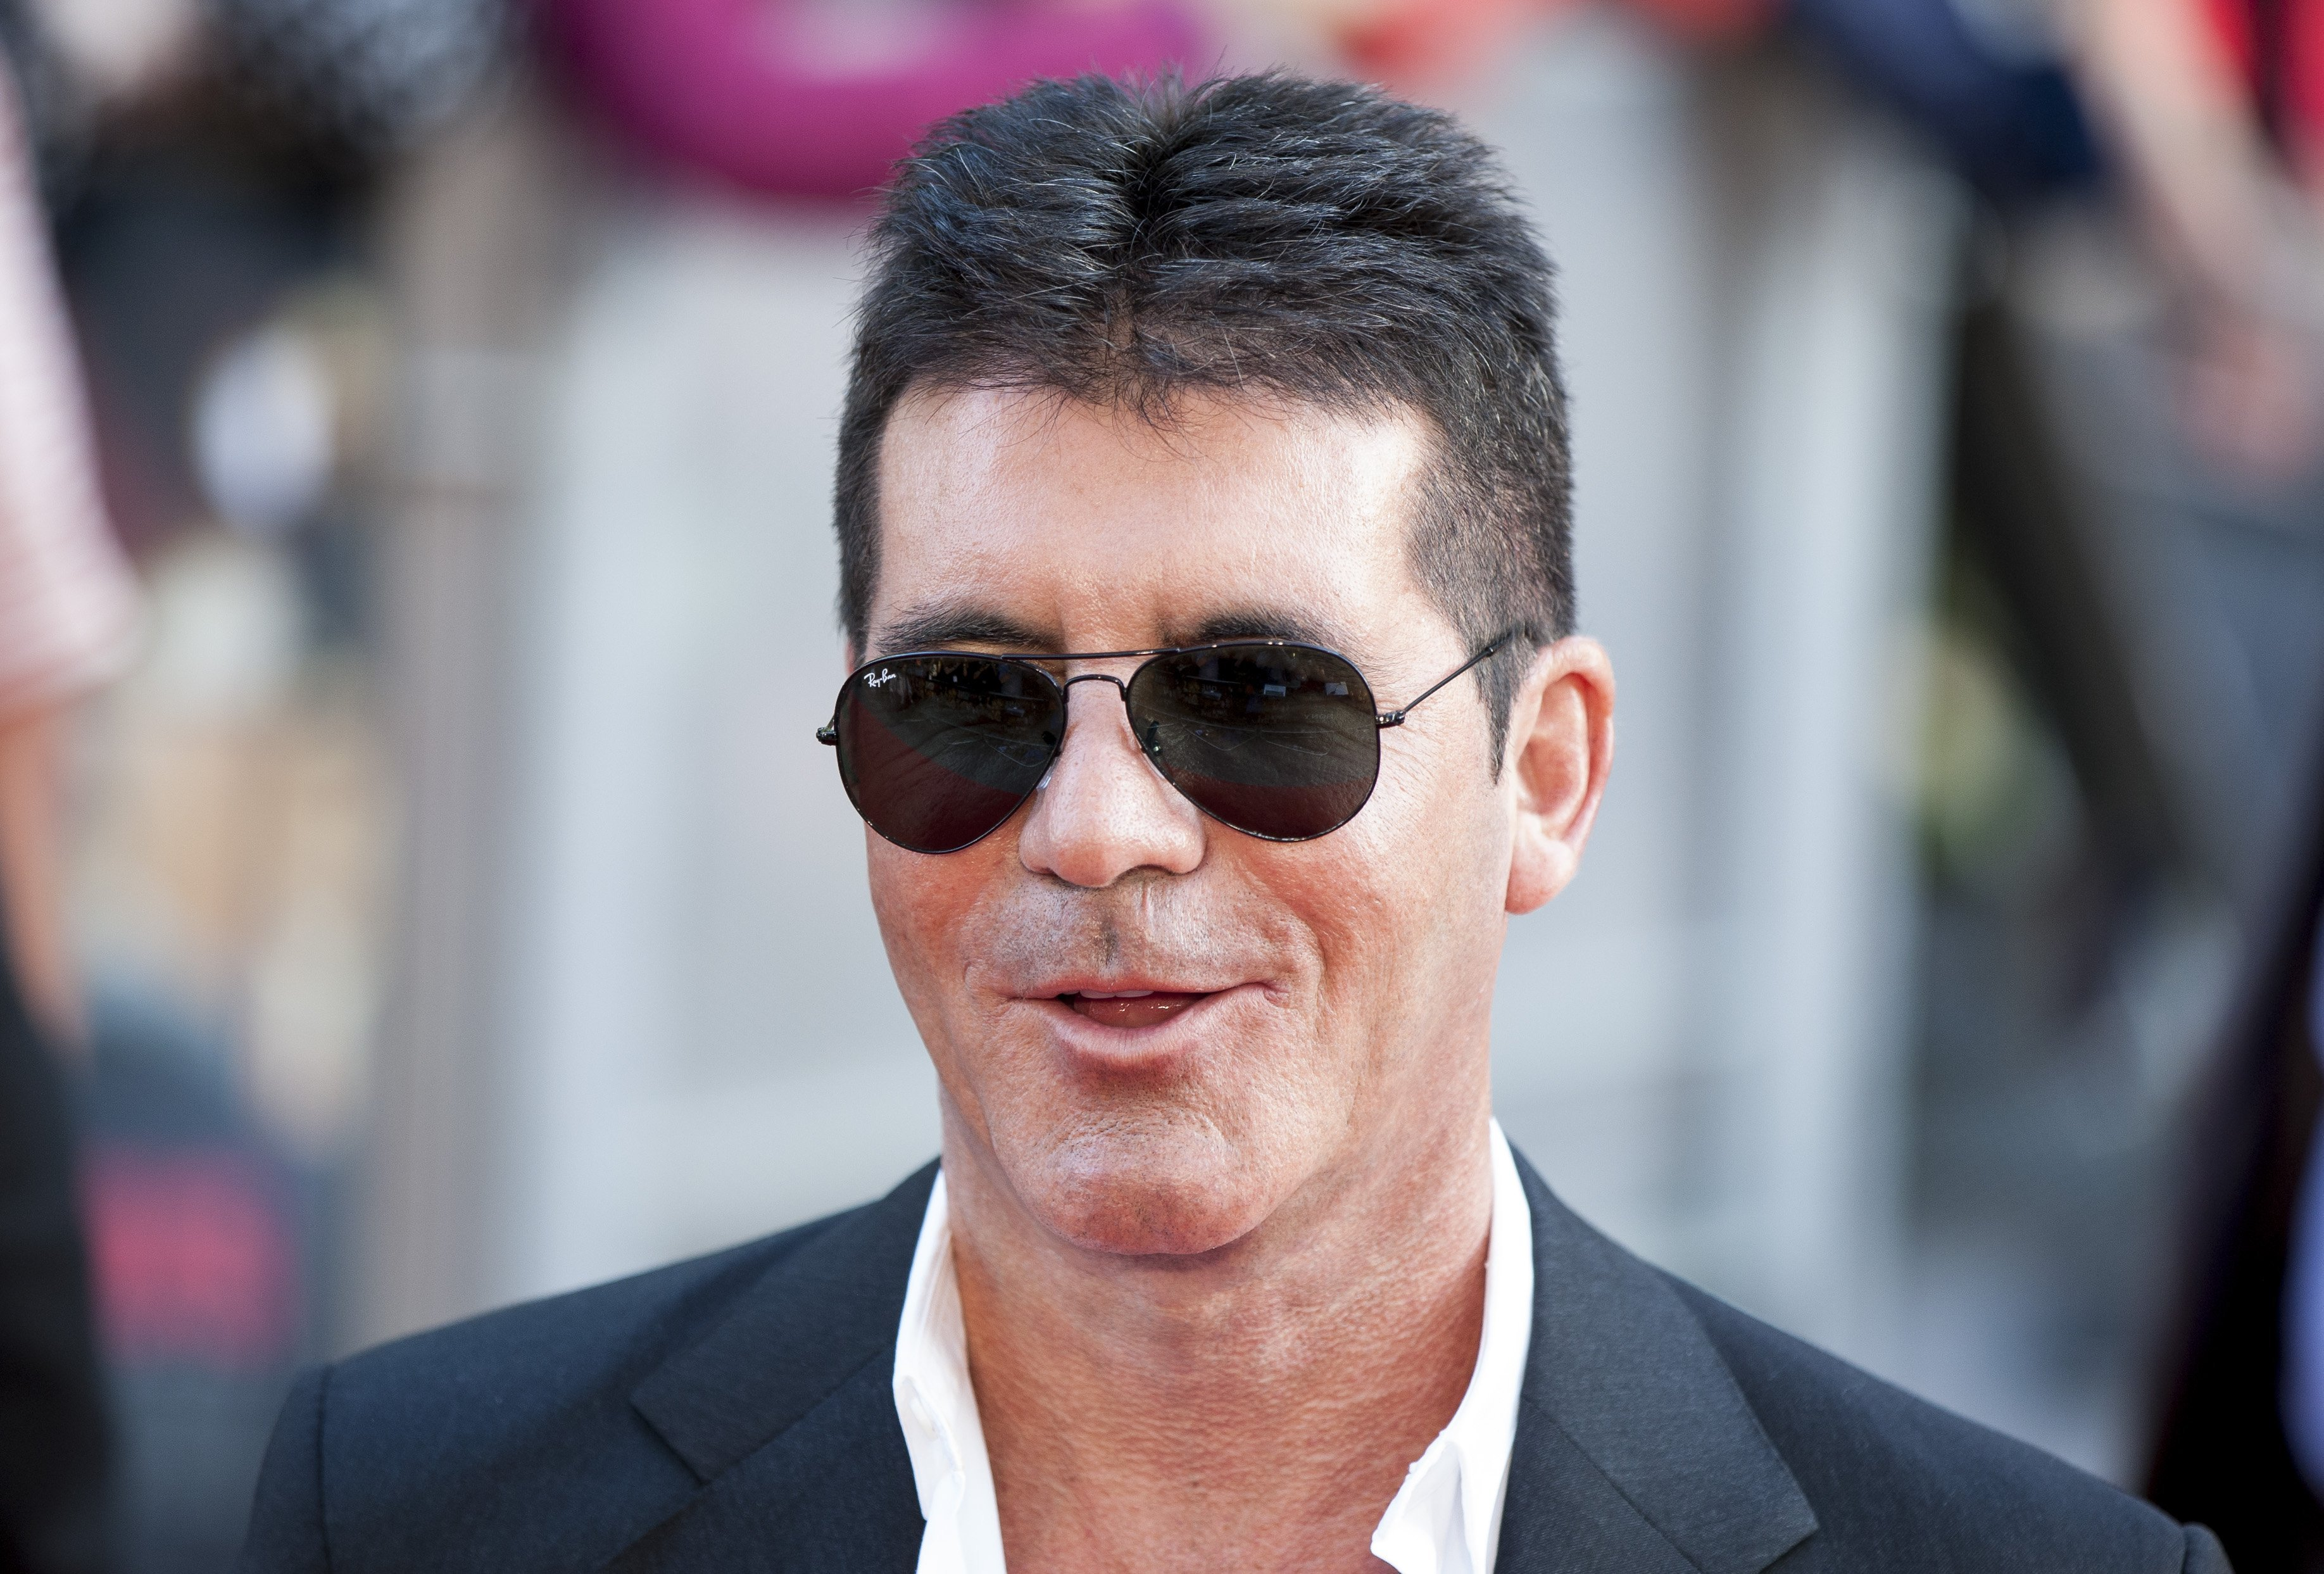 """Simon Cowell at the premiere of """"One Direction: This Is Us"""" in London, England on August 20, 2013 